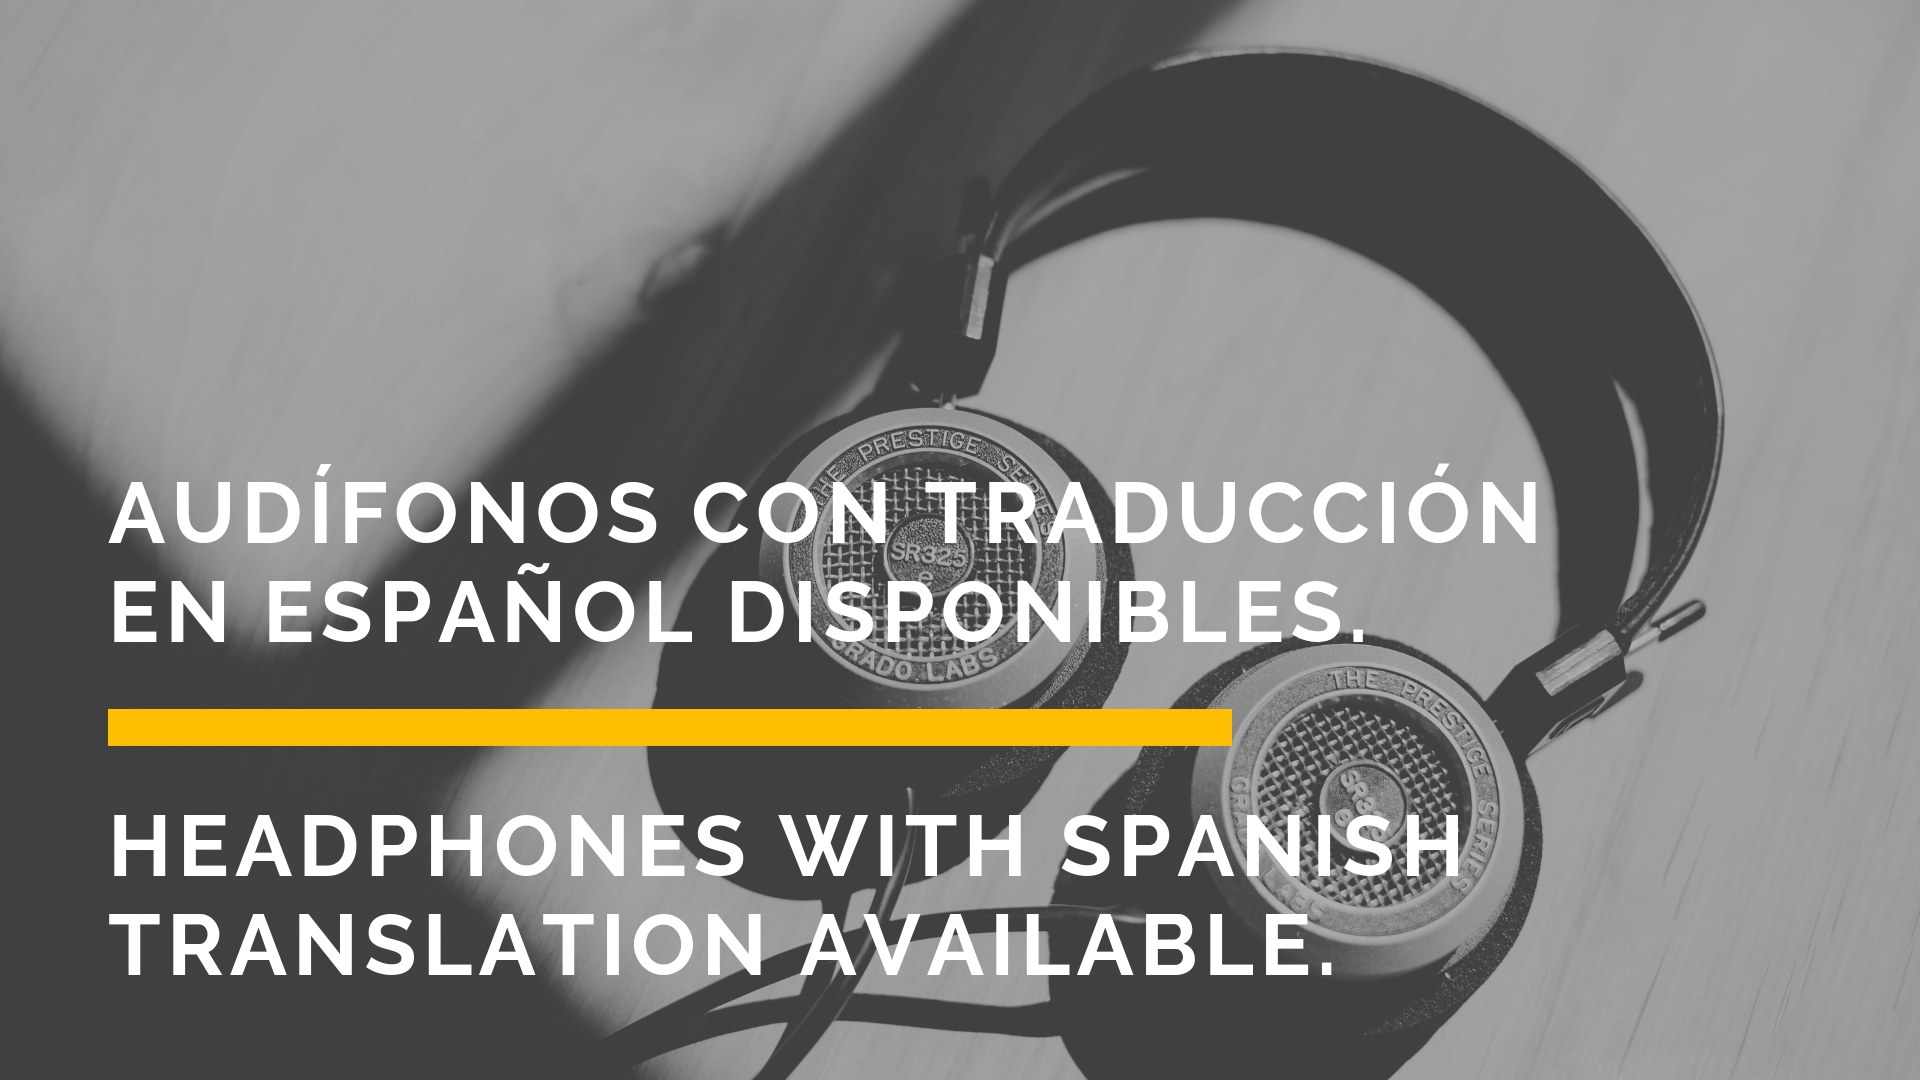 Spanish Translation Available - slide.jpg